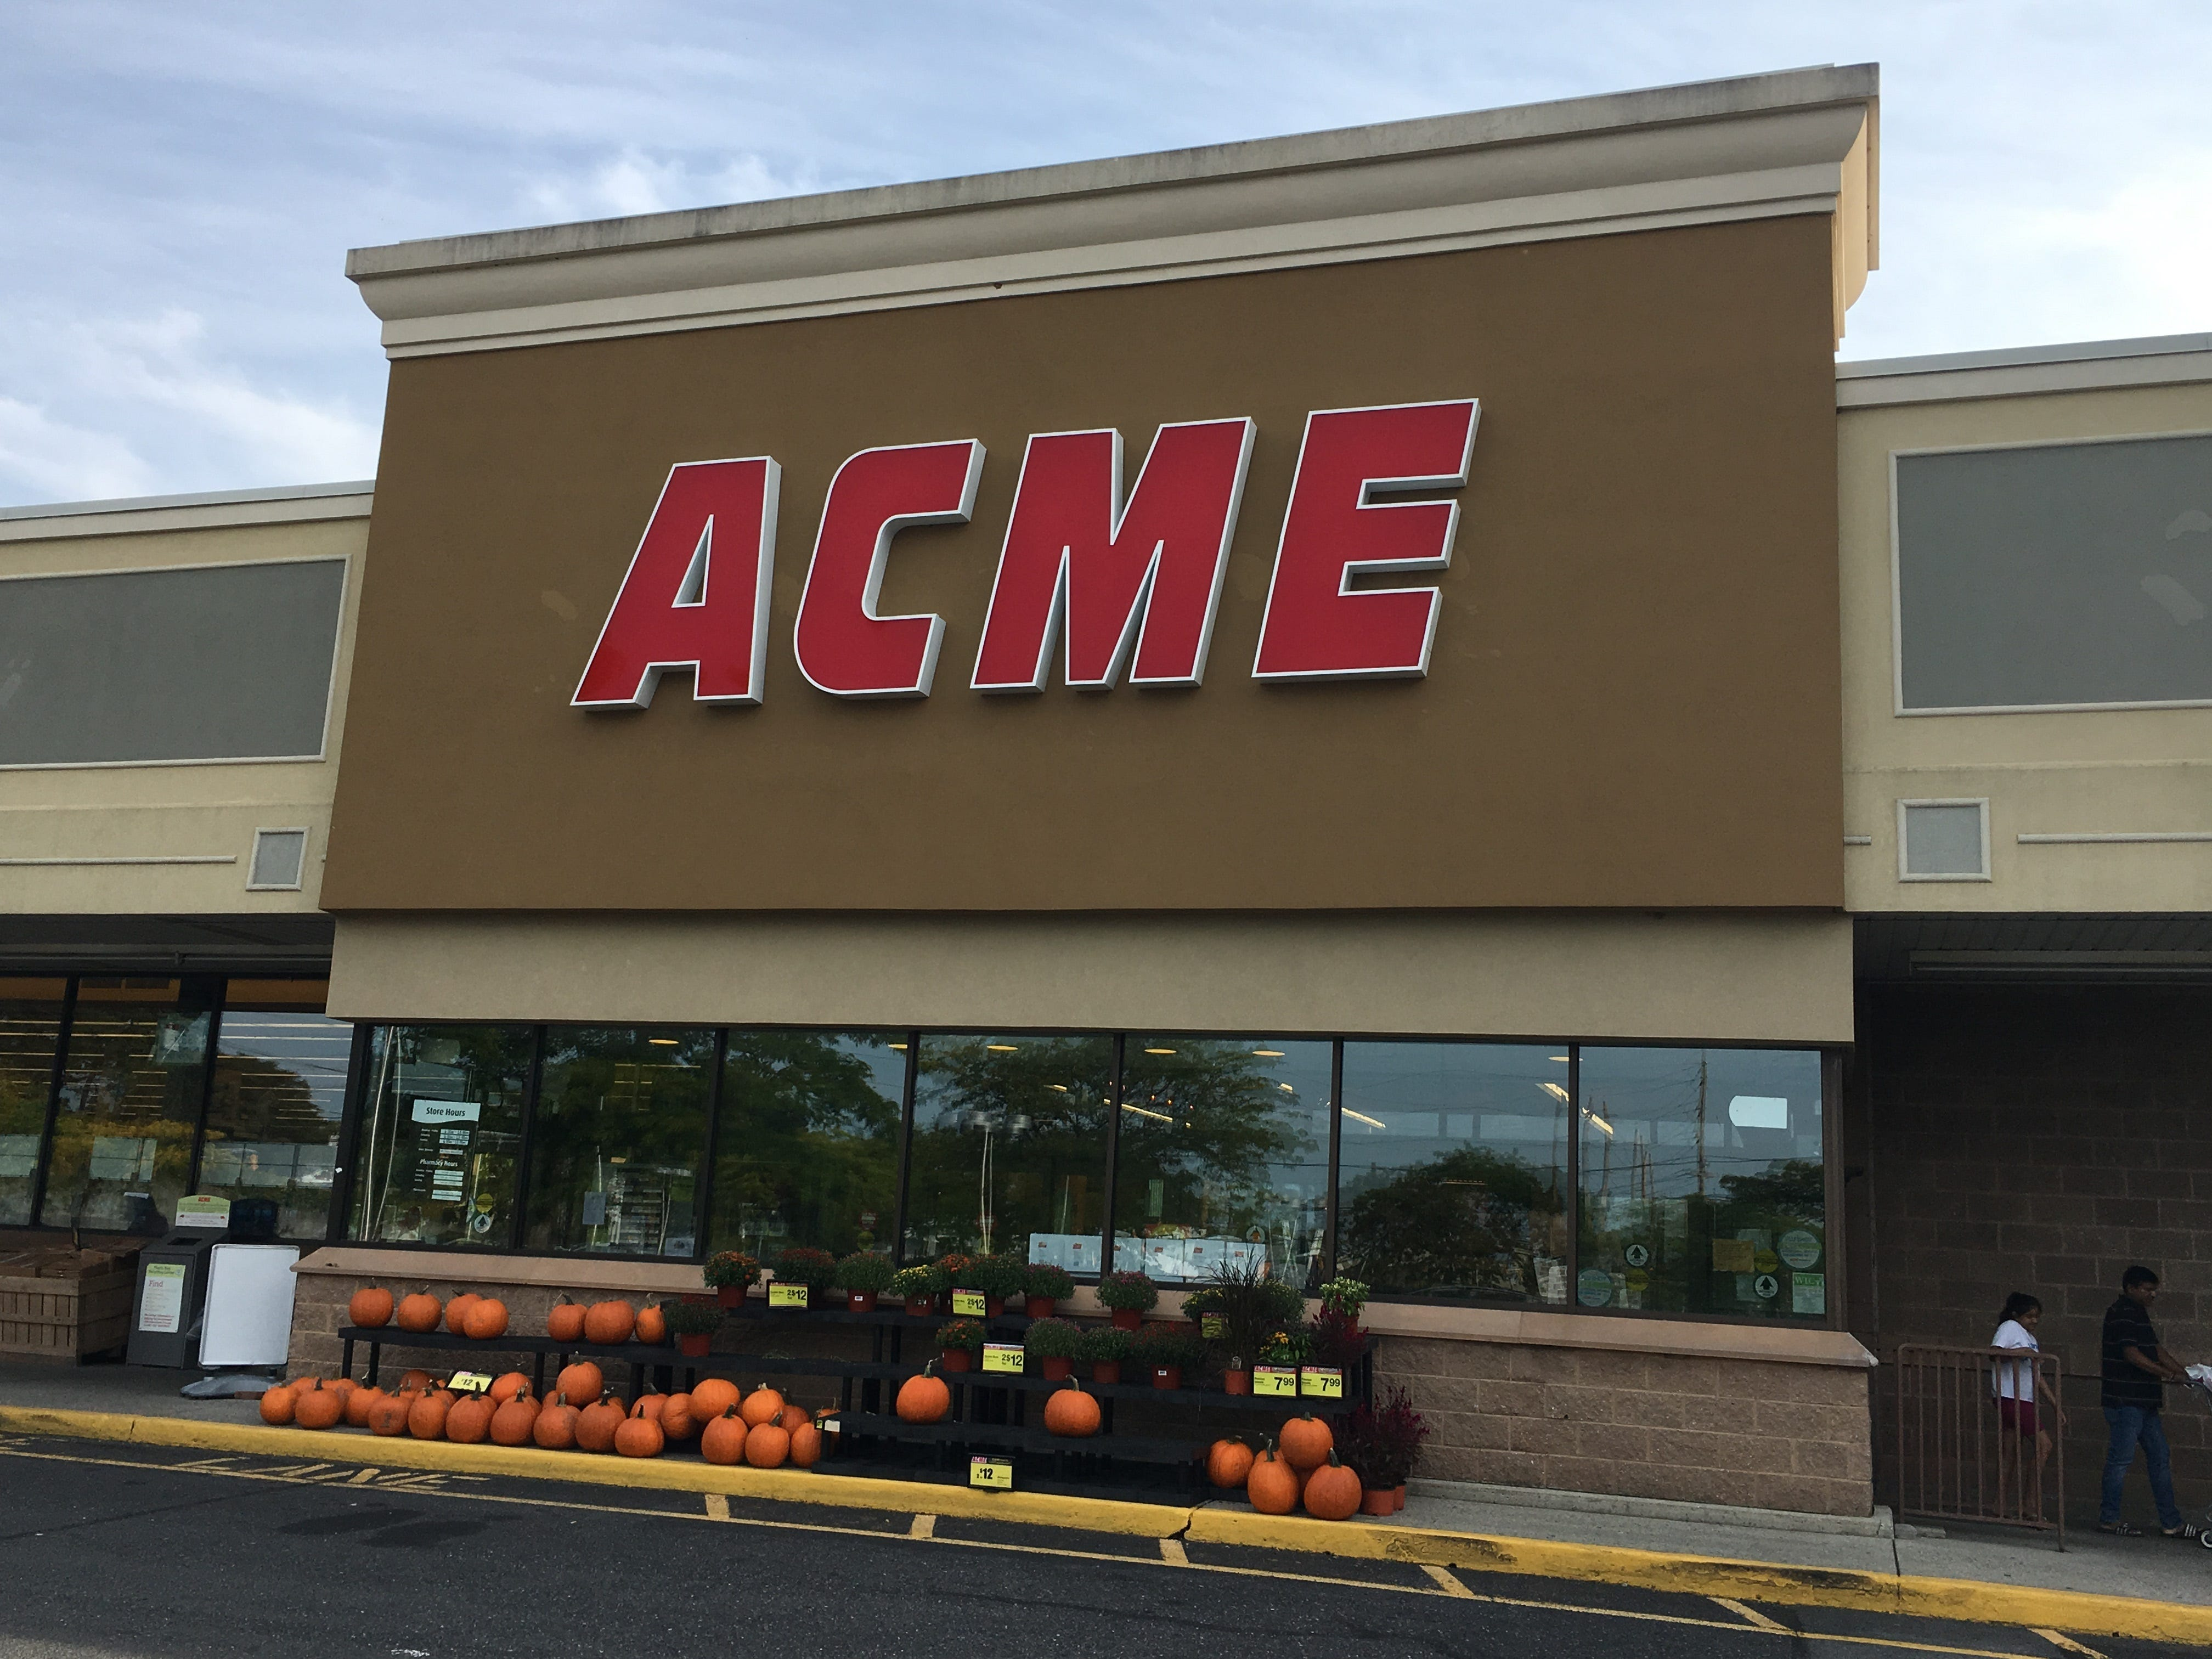 Acme dating phone number